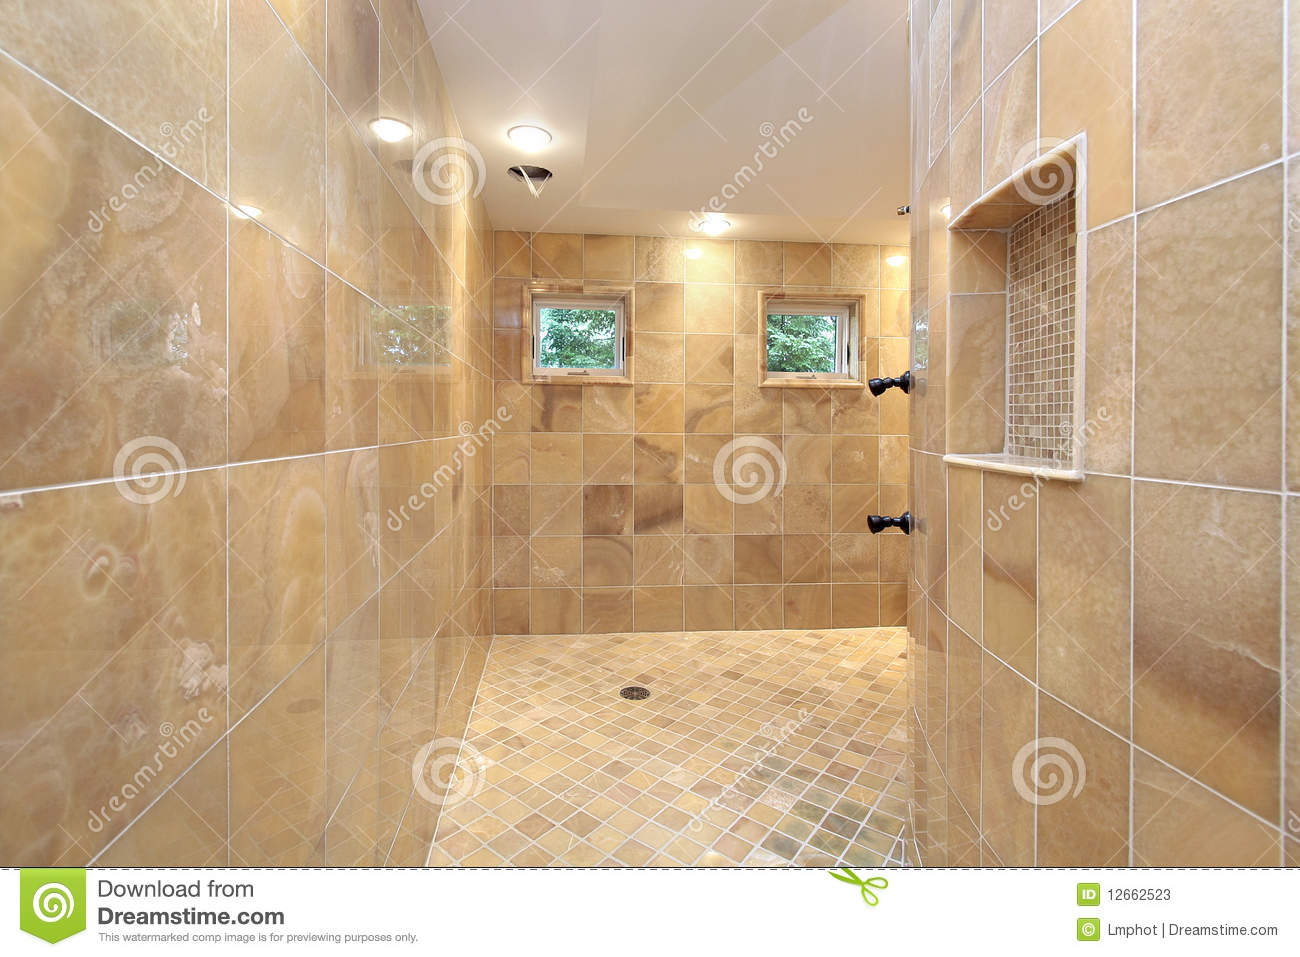 Shower With Marble Walls Stock Image Image Of Suburb